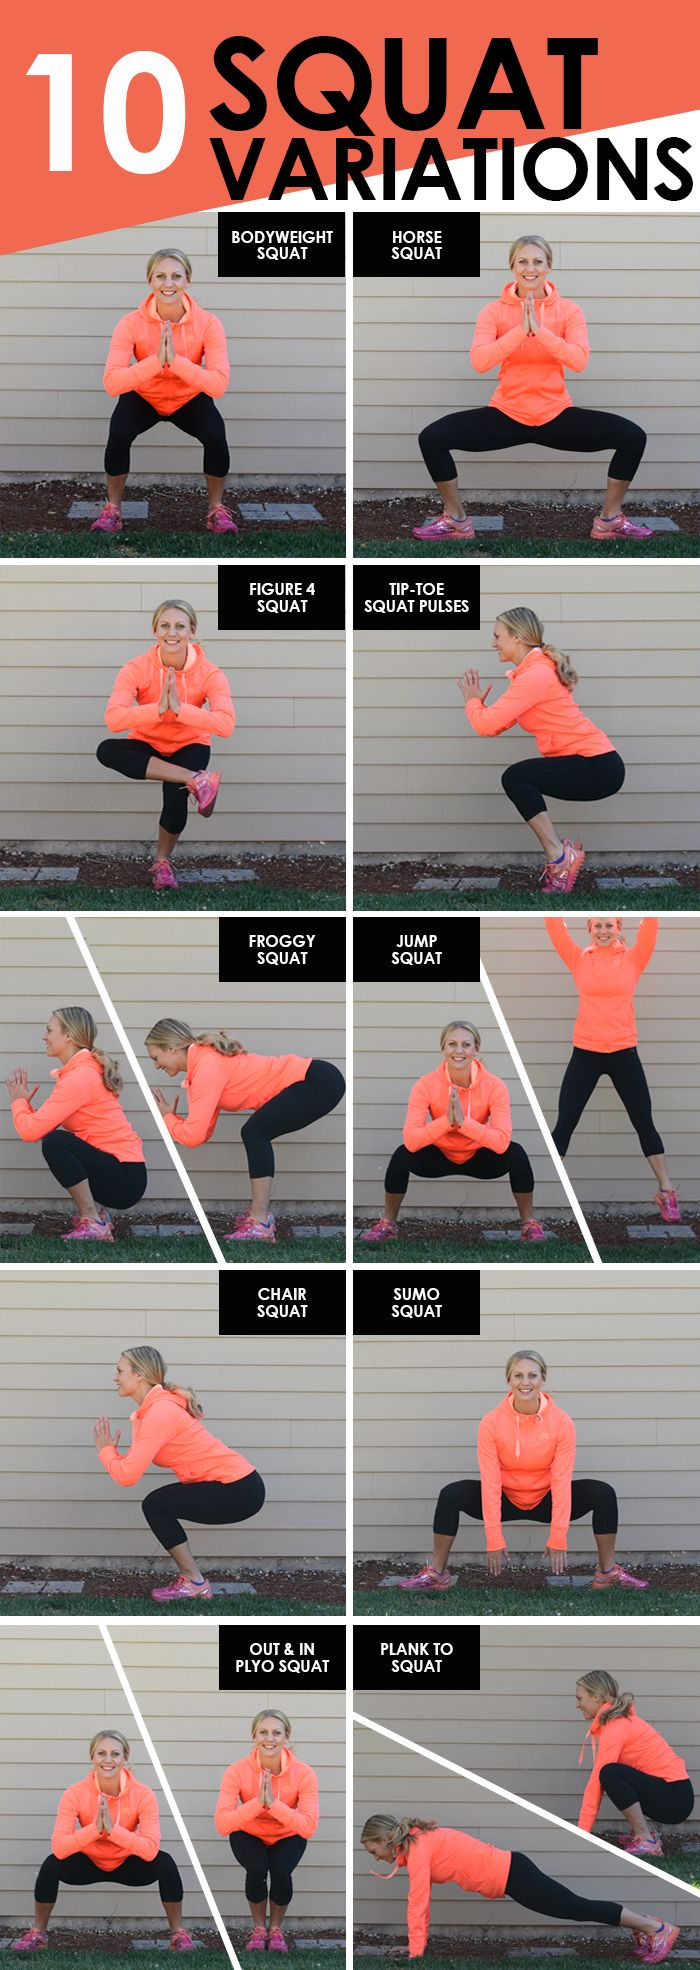 outlet online shopping Love squats  but need to mix it up a little bit  Here are 10 different squat variations for you to add into your next workout